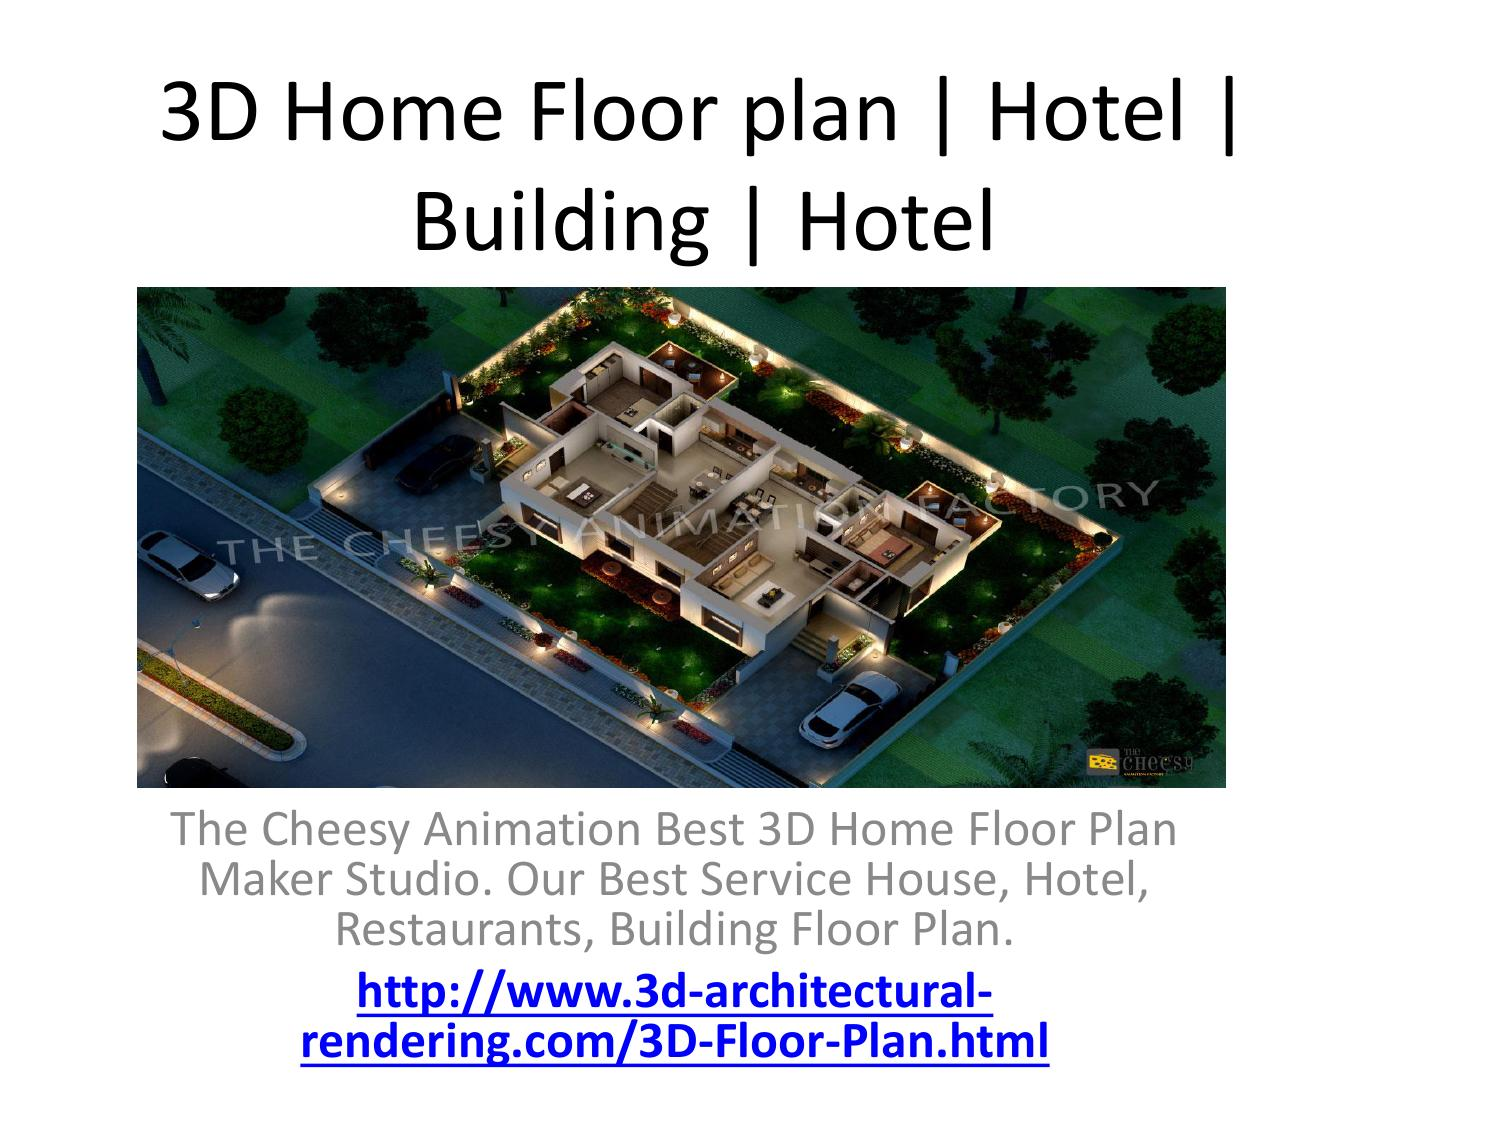 3D Home Floor Plan | Hotel | Building | Hotel By 3D Architectural Rendering  Companies Dubai   Issuu